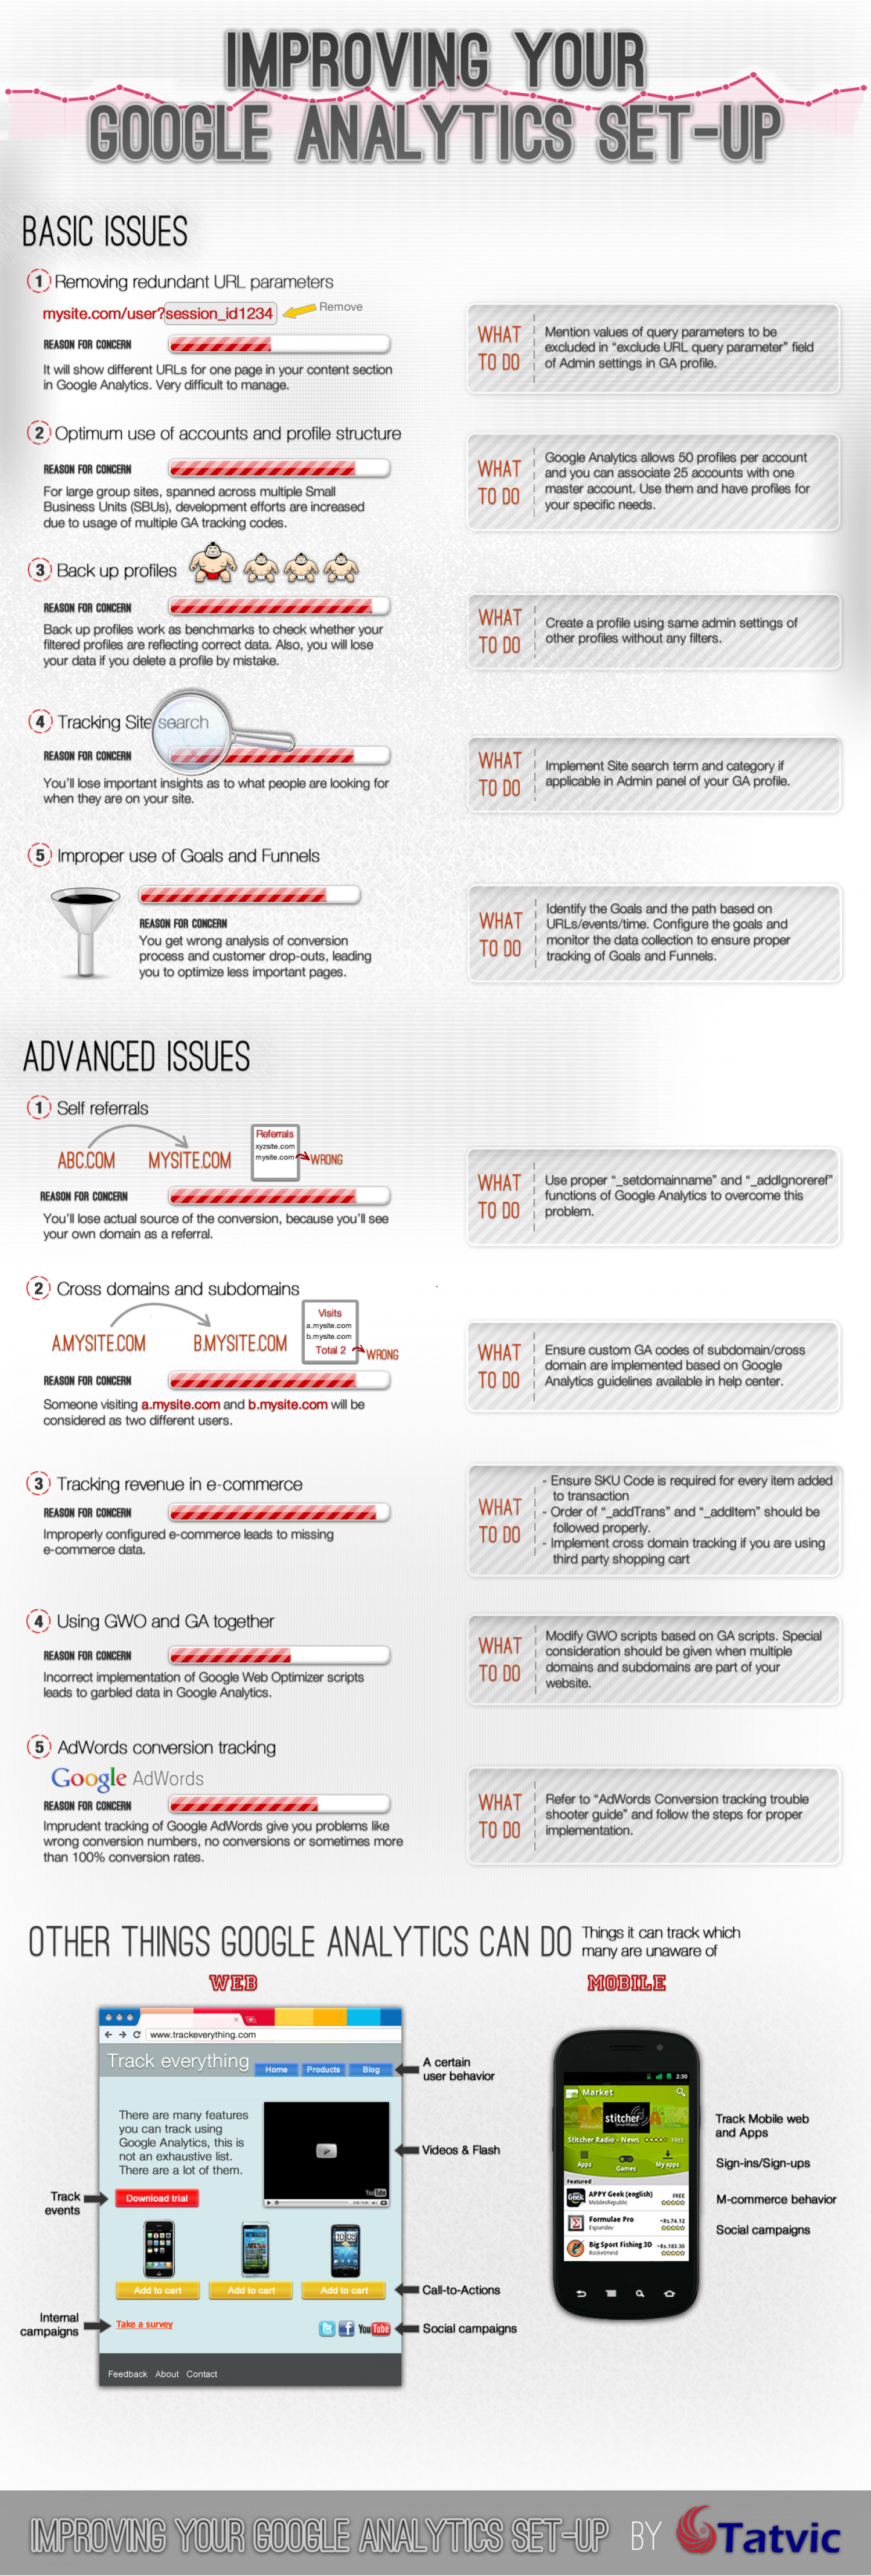 Improve your Google Analytics set up Infographic